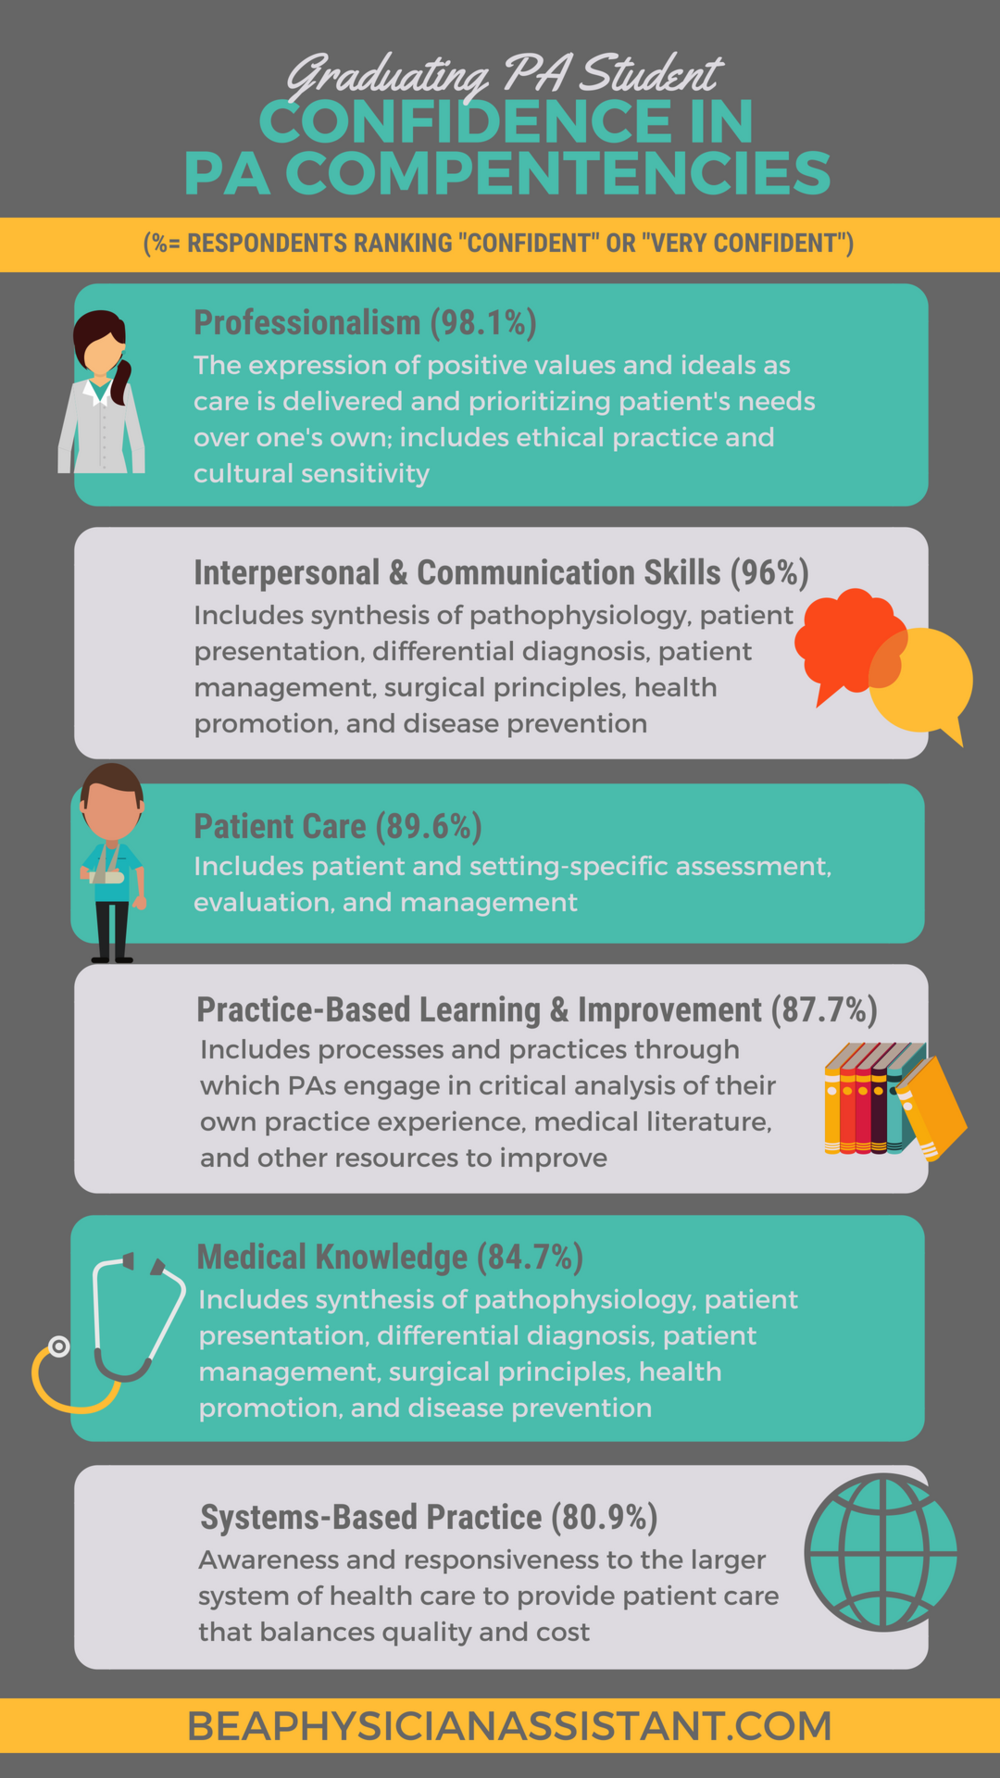 The 6 Competencies of PA Student AssessmentlBe a Physician Assistant